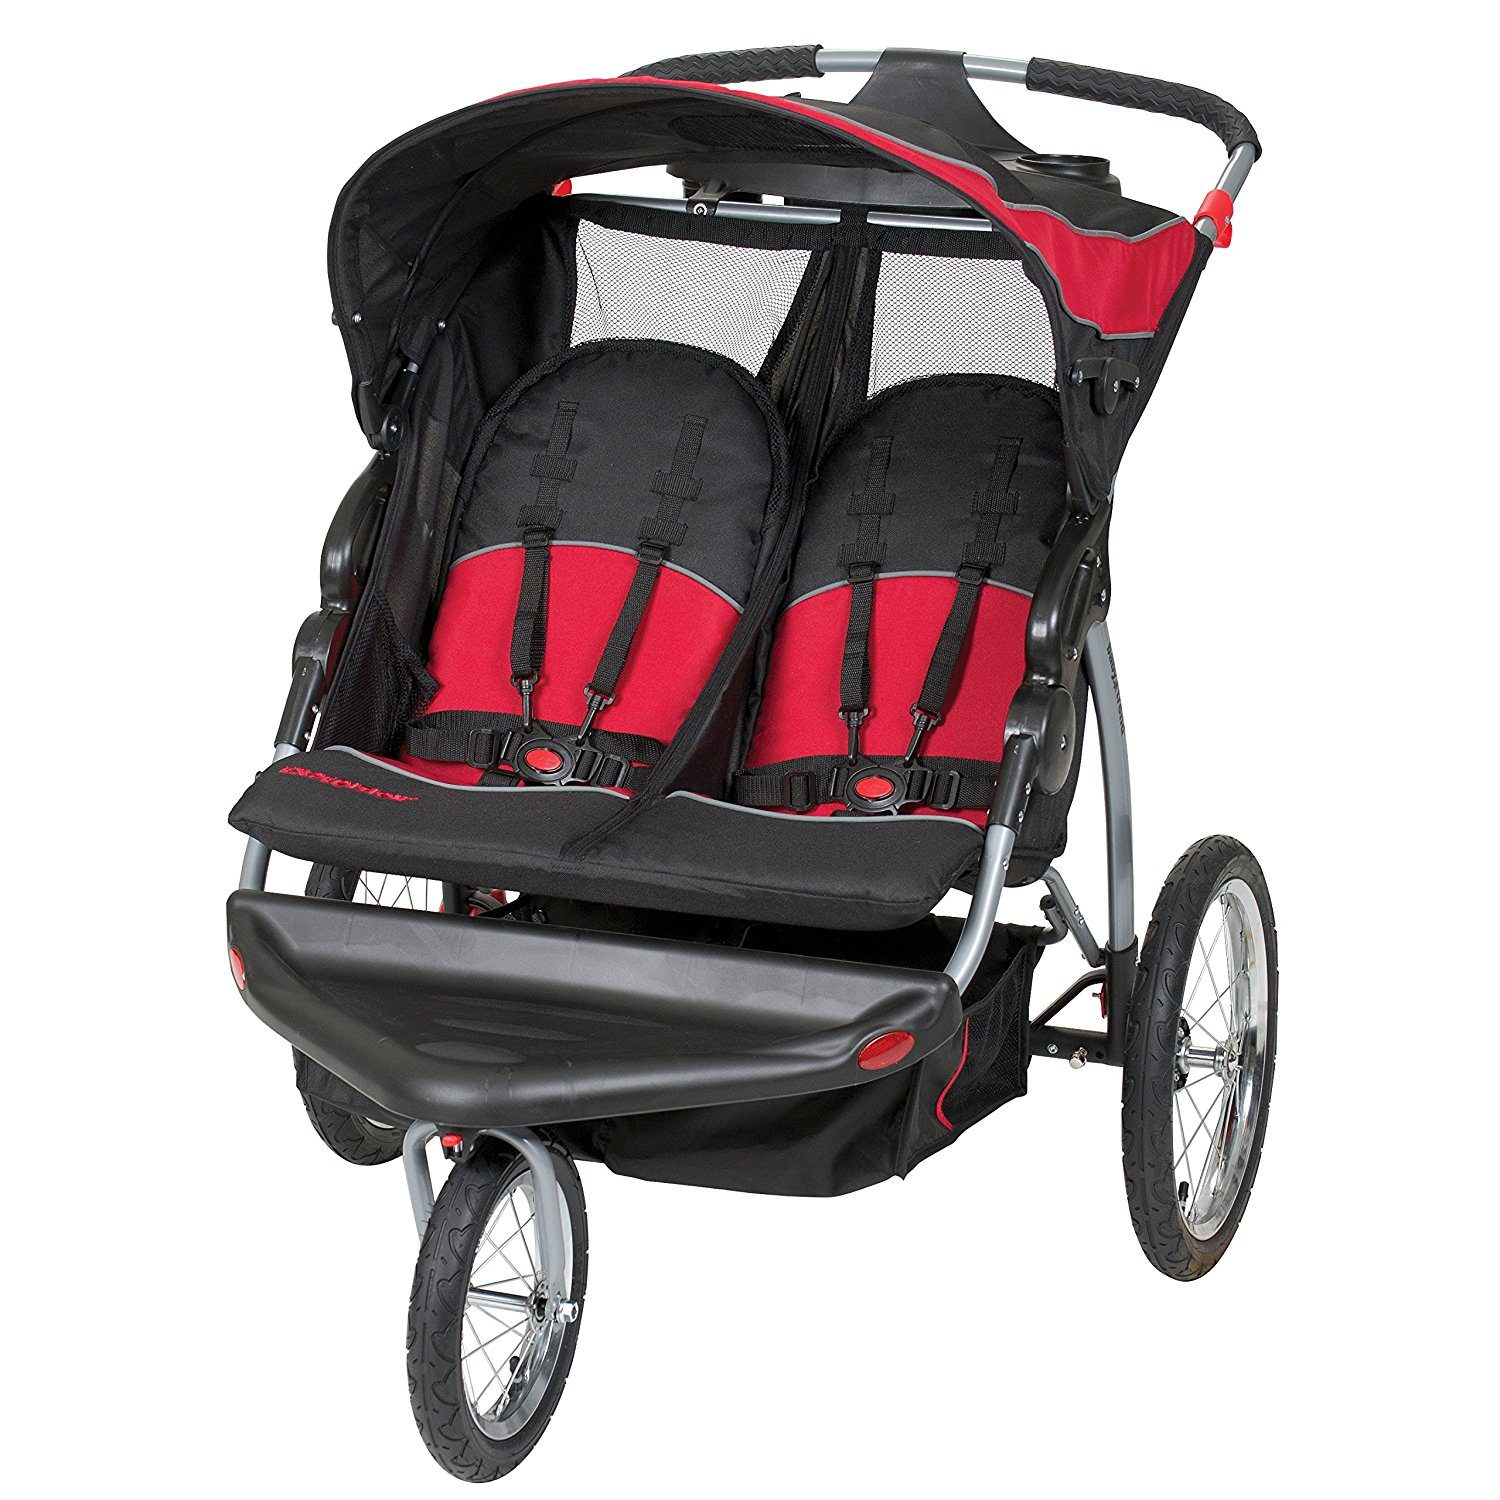 Double Stroller Jogger Reviews Best Double Jogging Stroller Reviews For Infant And Toddler